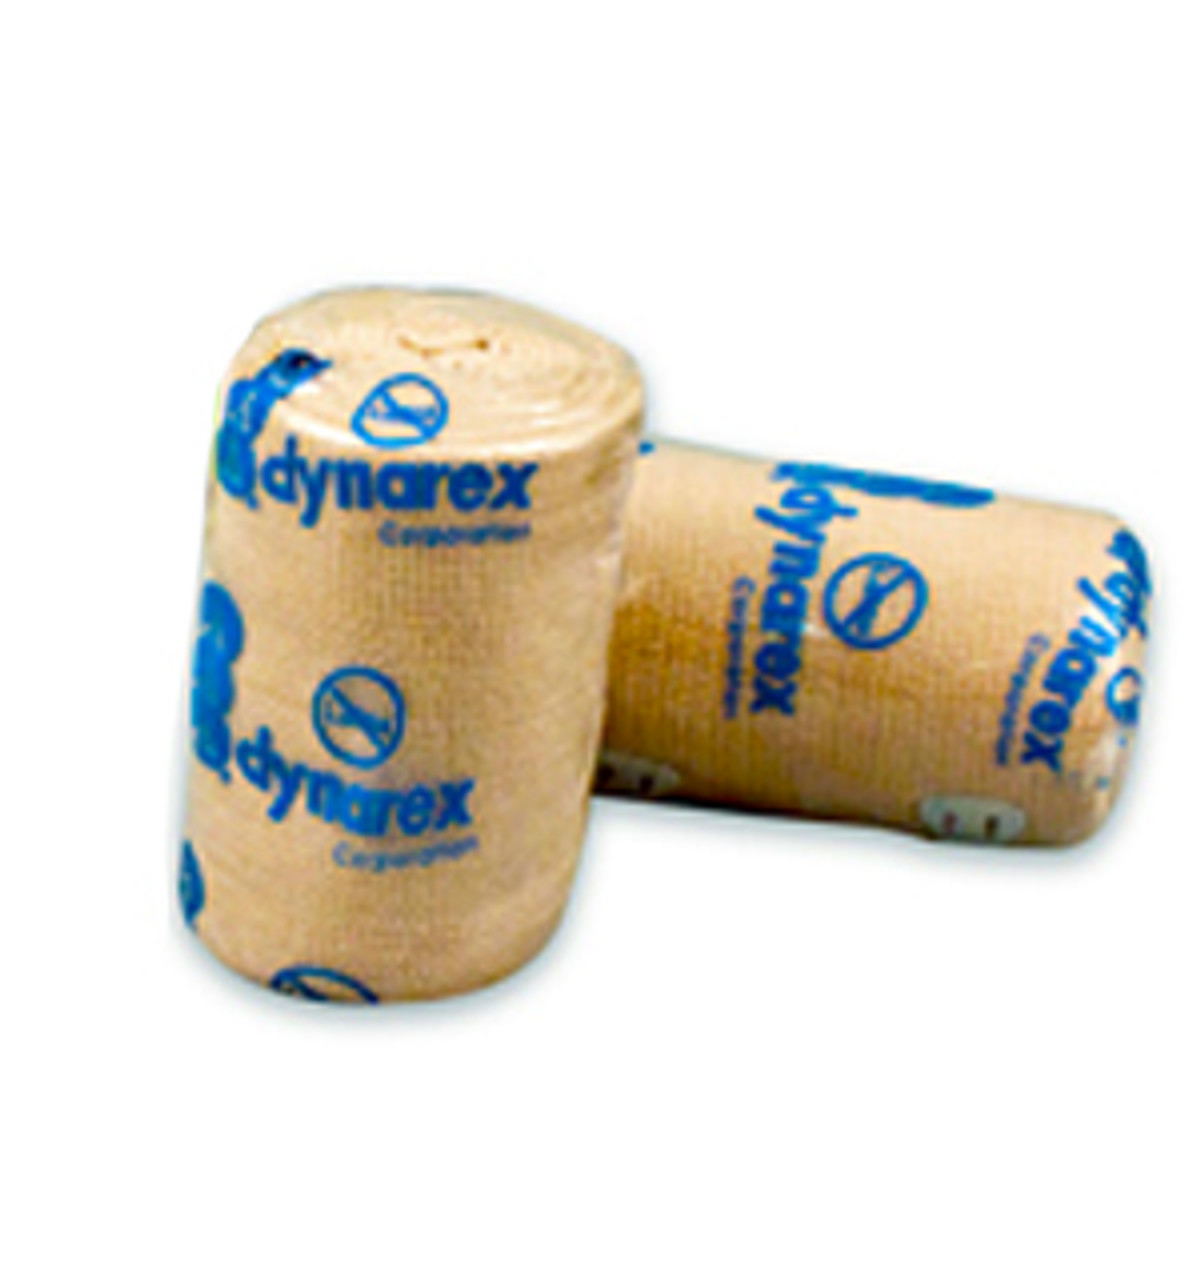 Dynarex Elastic Bandages 2 For Injured Joints And Swollen Limbs